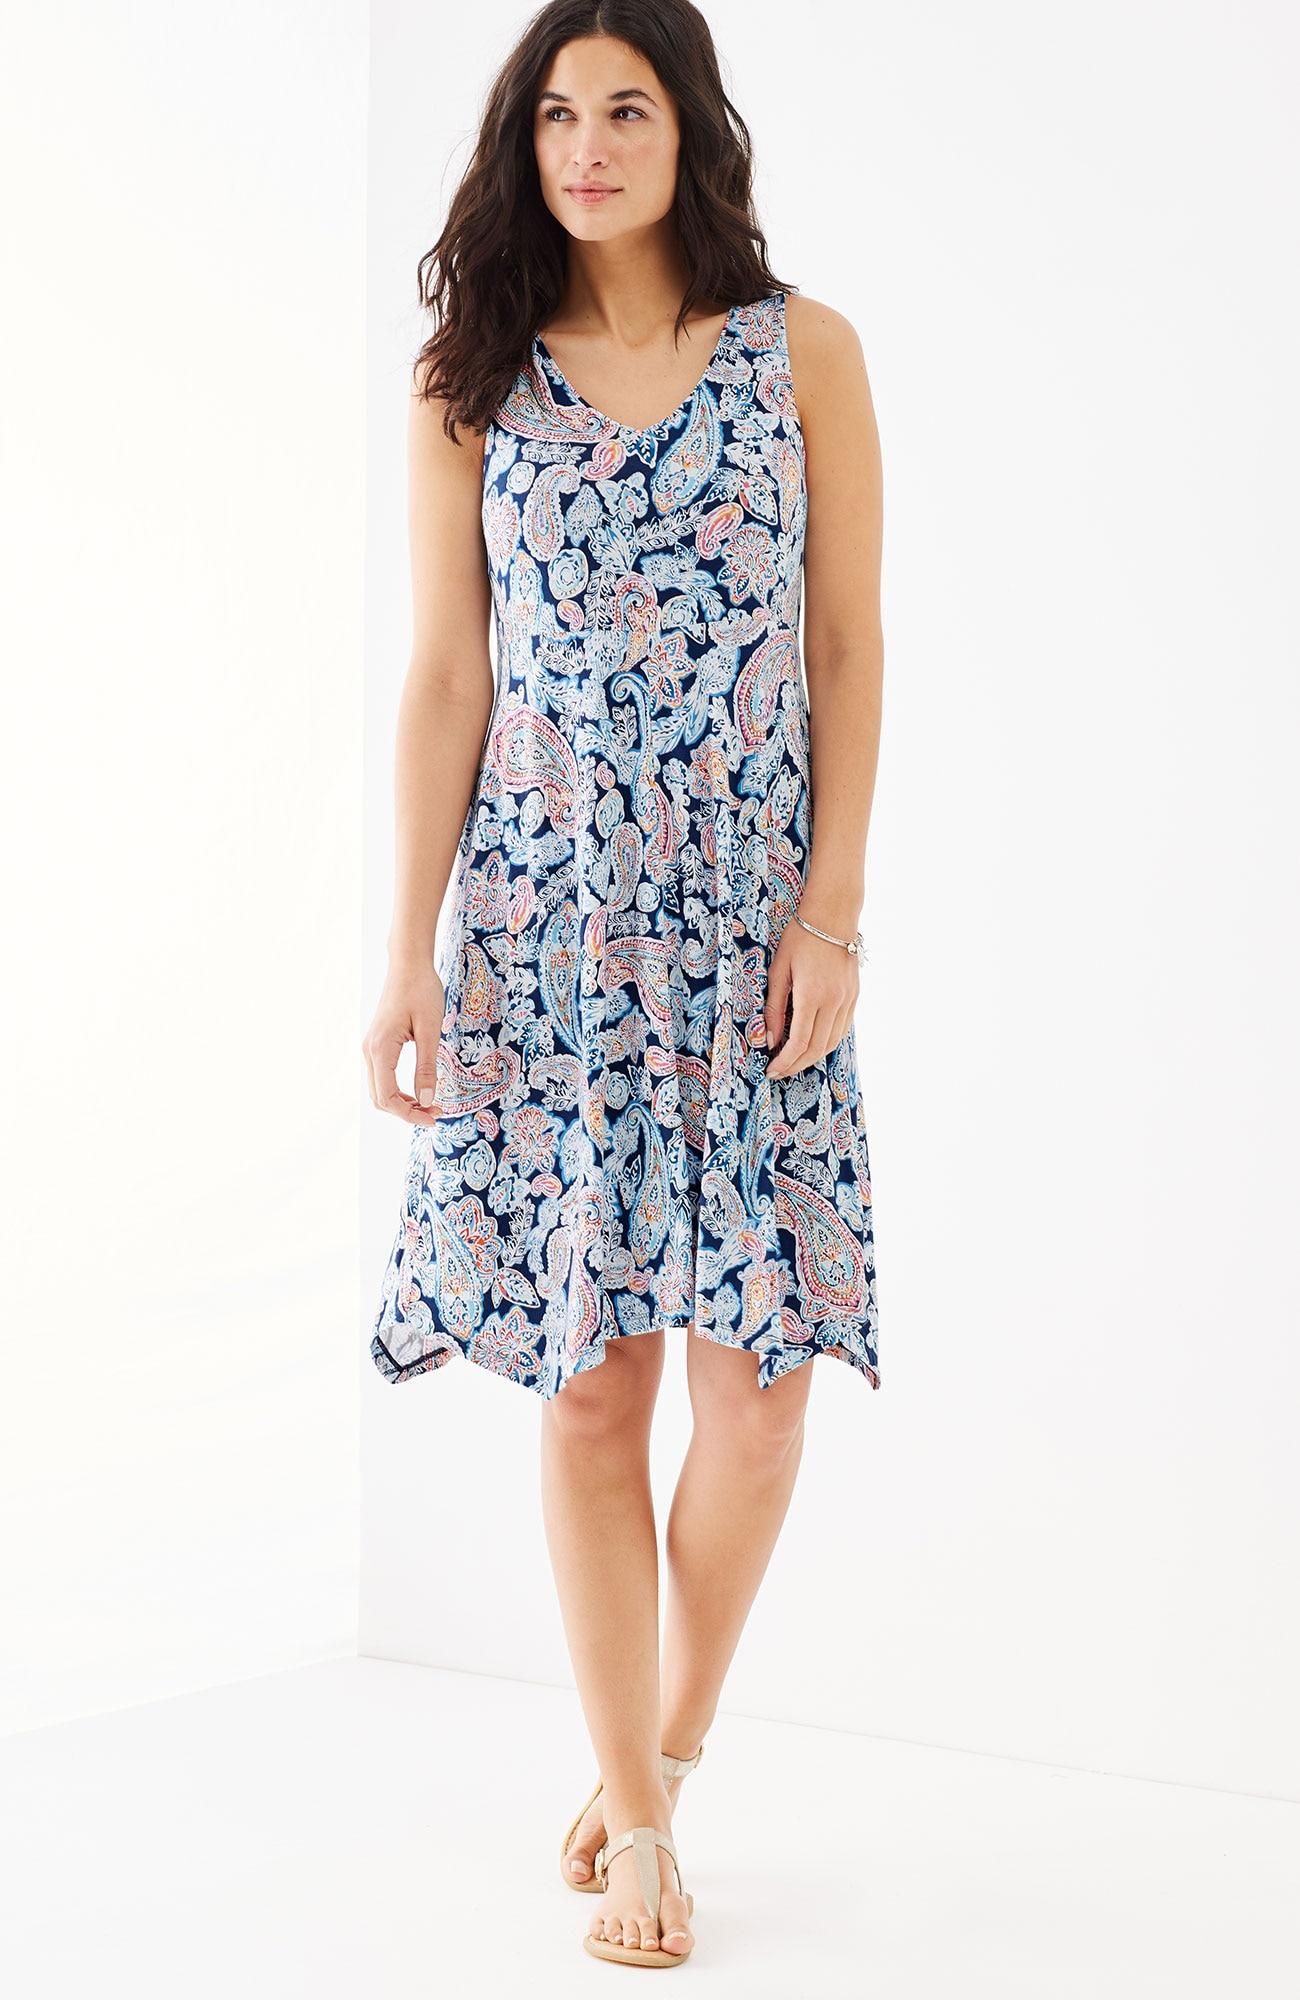 dipped-hem printed knit dress